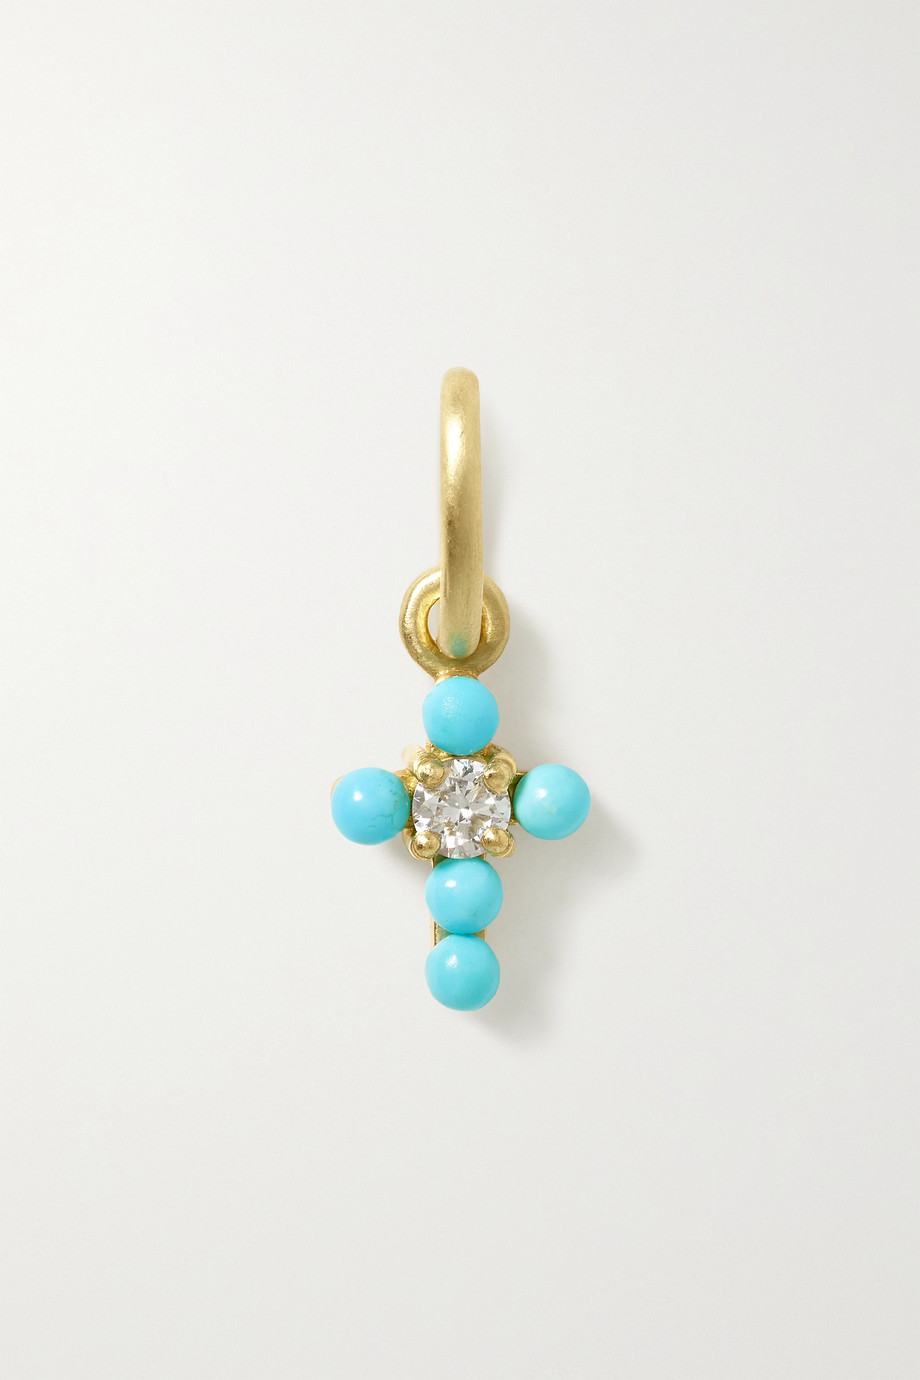 IRENE NEUWIRTH Gumball 18-karat gold, turquoise and diamond pendant